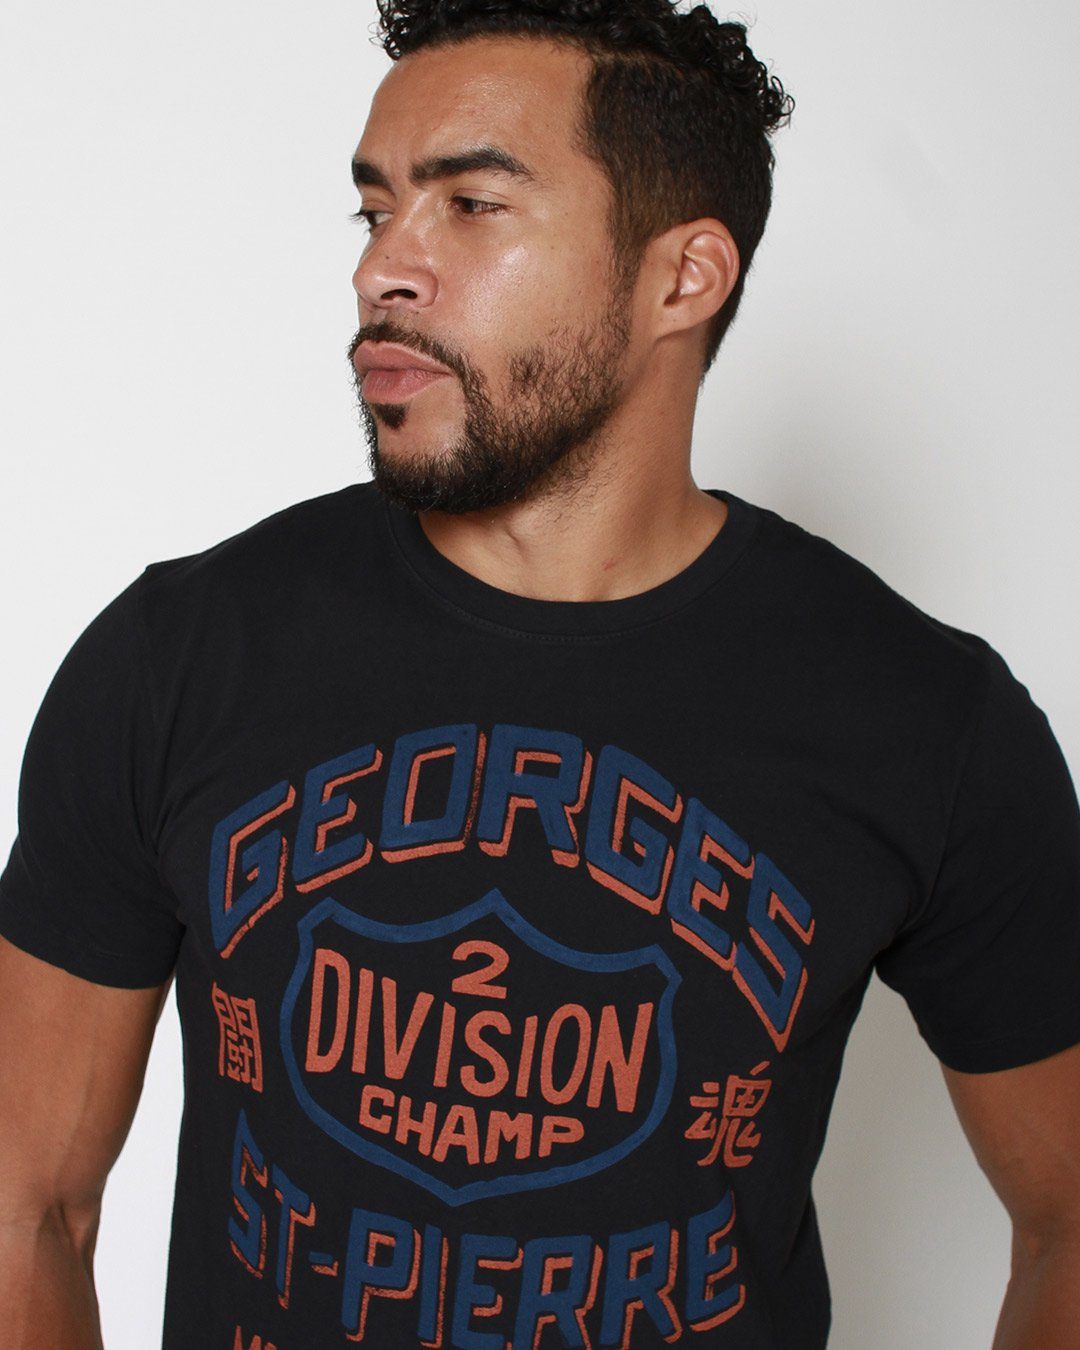 GSP 2 Division Champ Tribute Tee